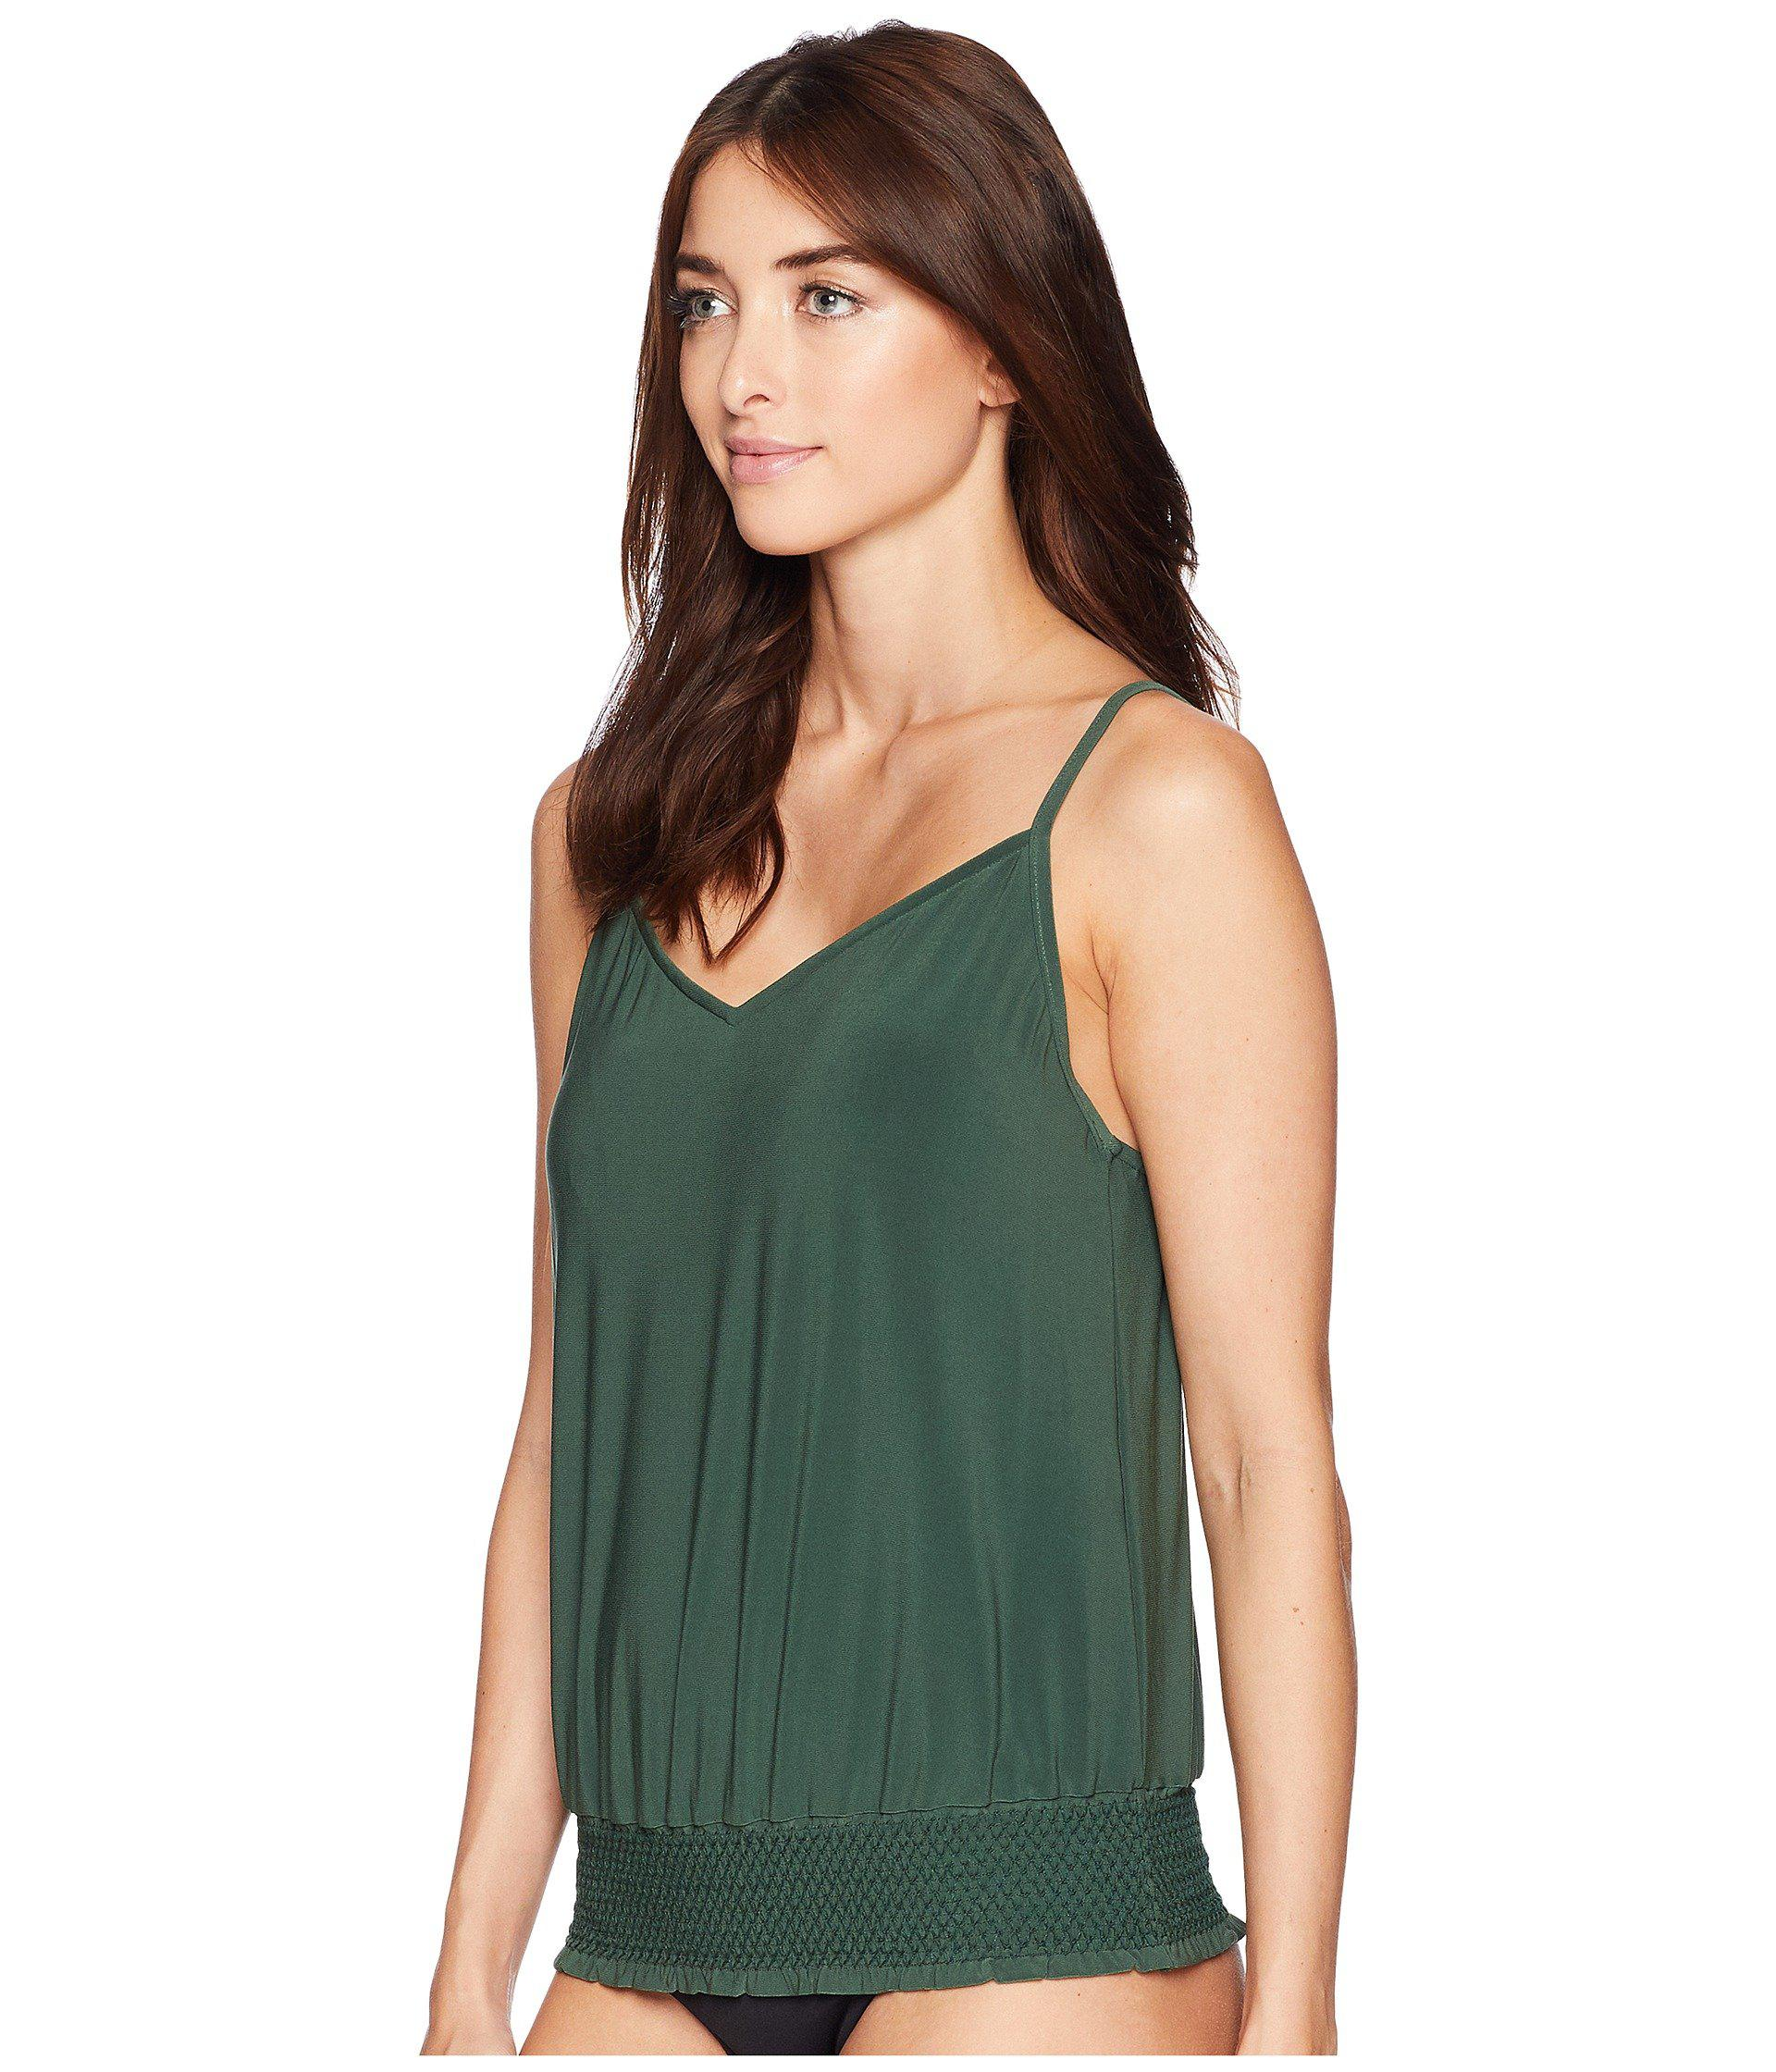 534ebefd45 Lyst - Magicsuit Justina Top (moss) Women s Swimwear in Green - Save 55%